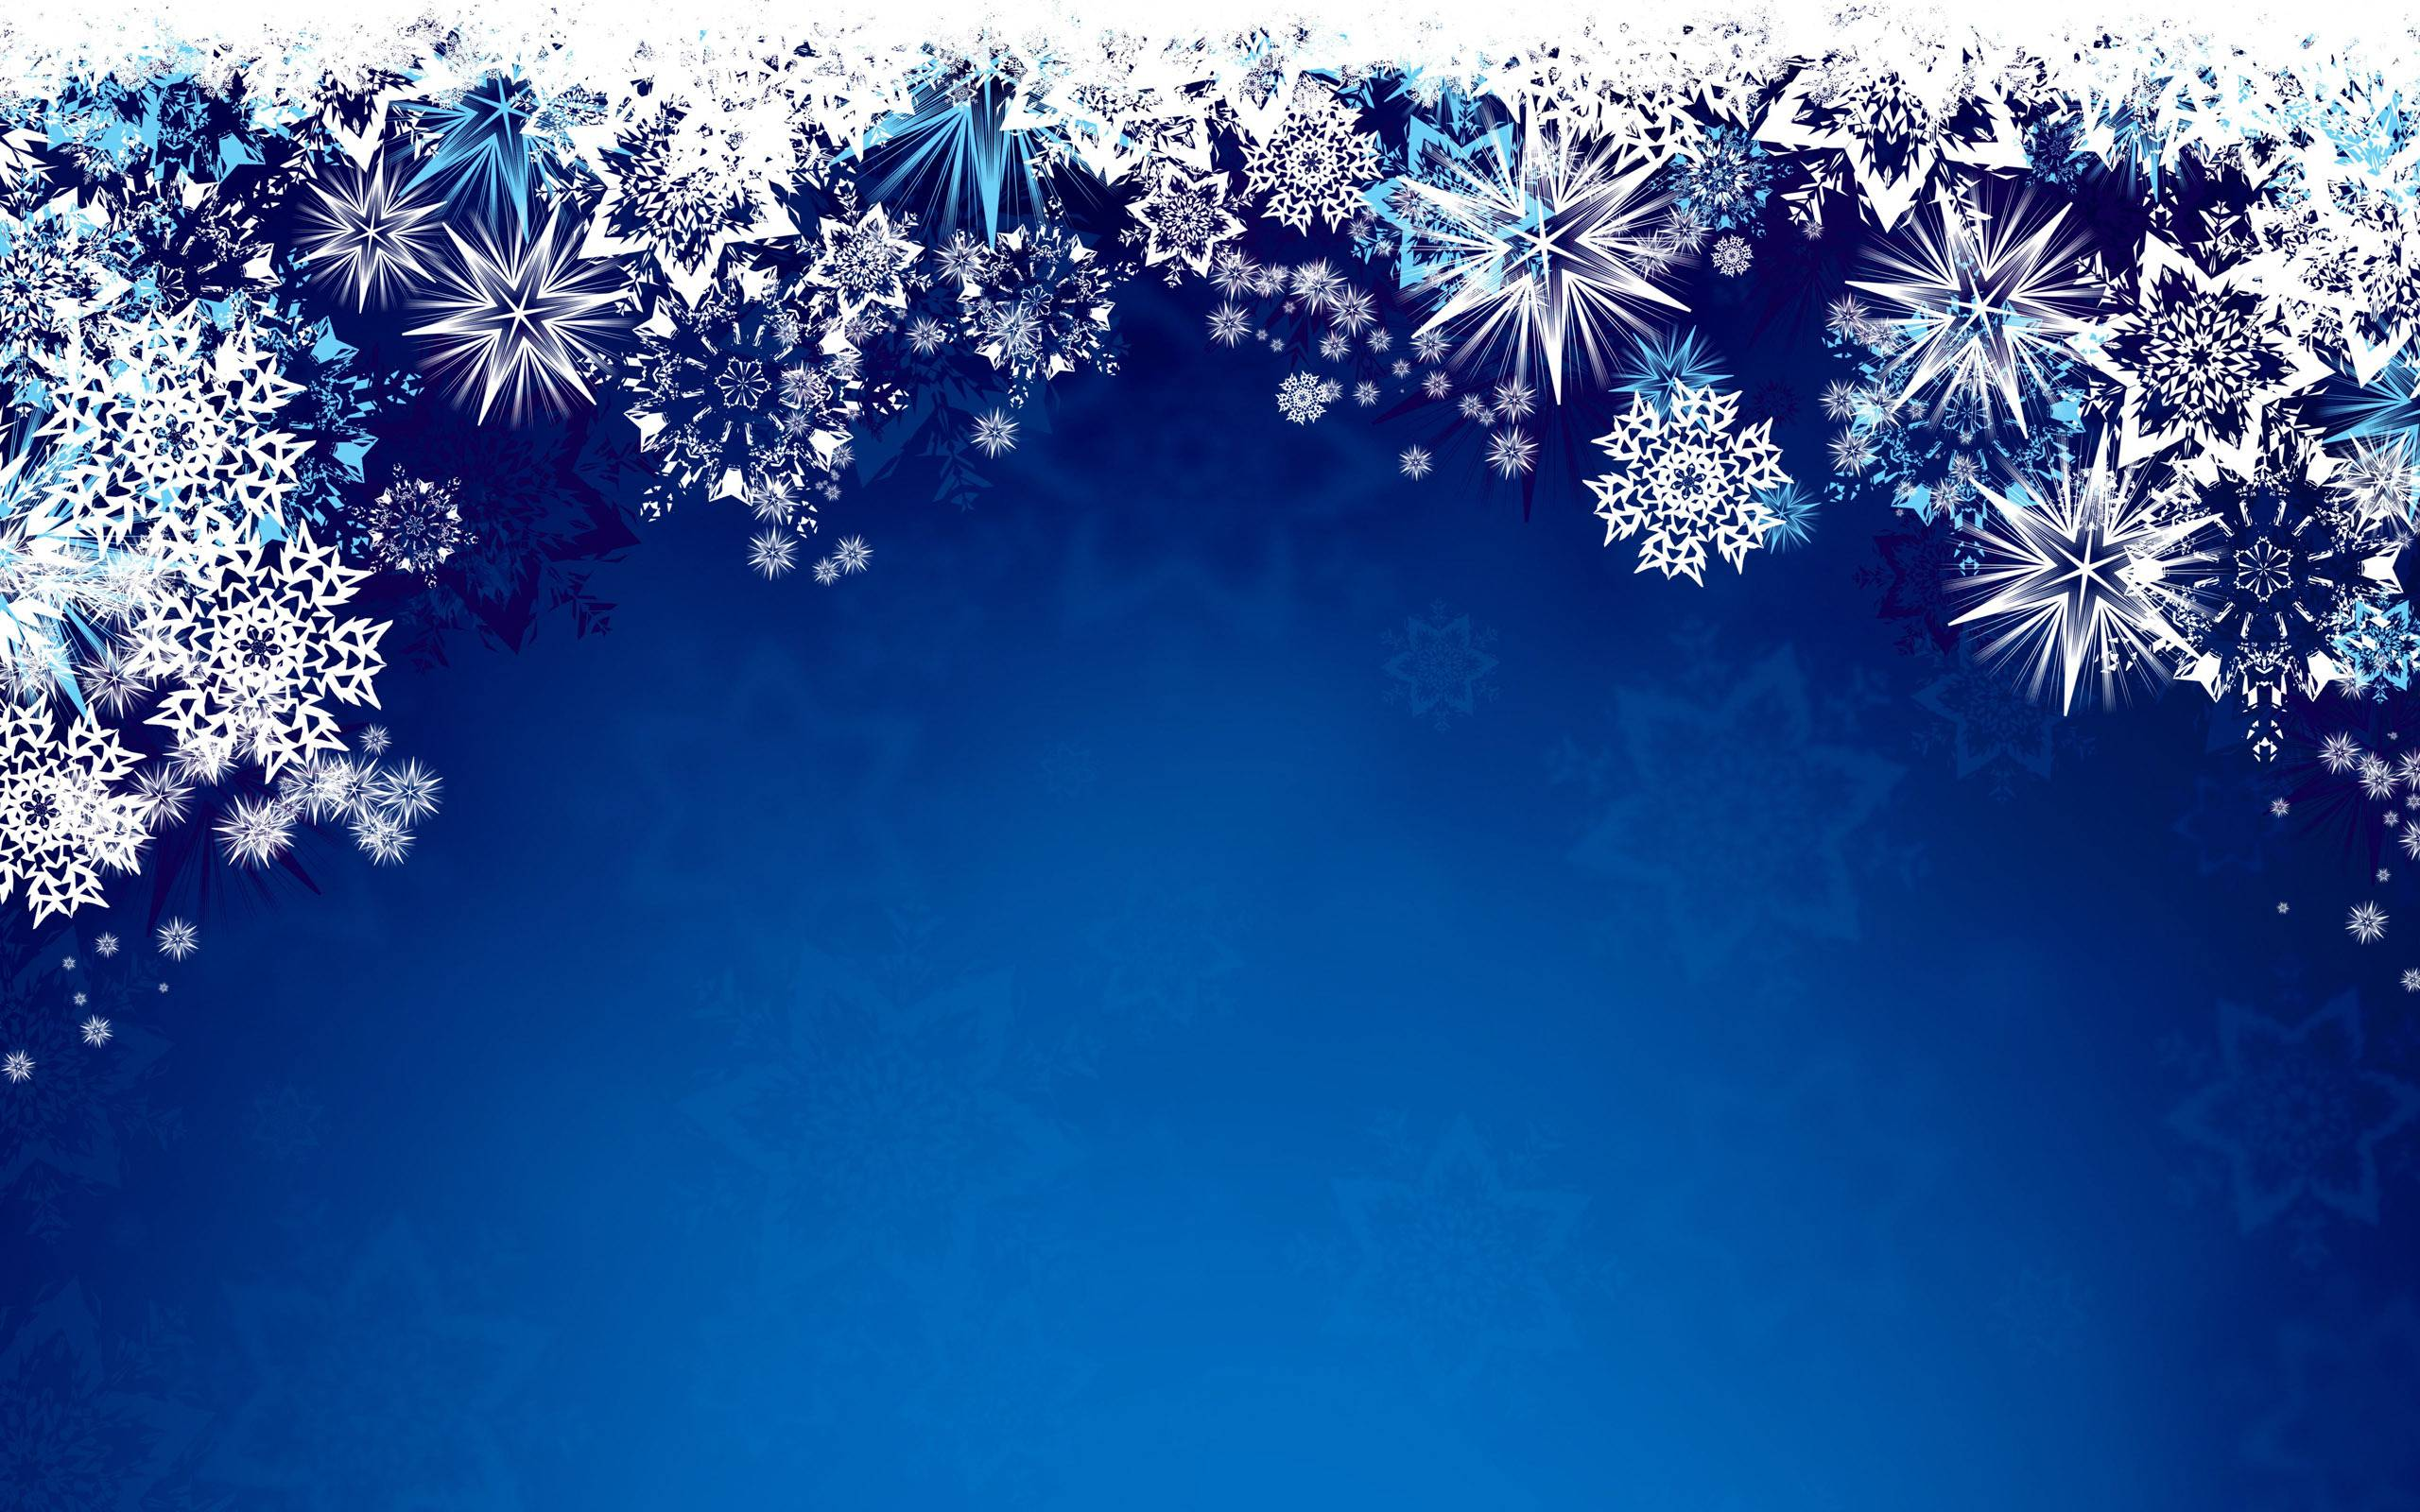 Snow Flake Backgrounds - Wallpaper Cave